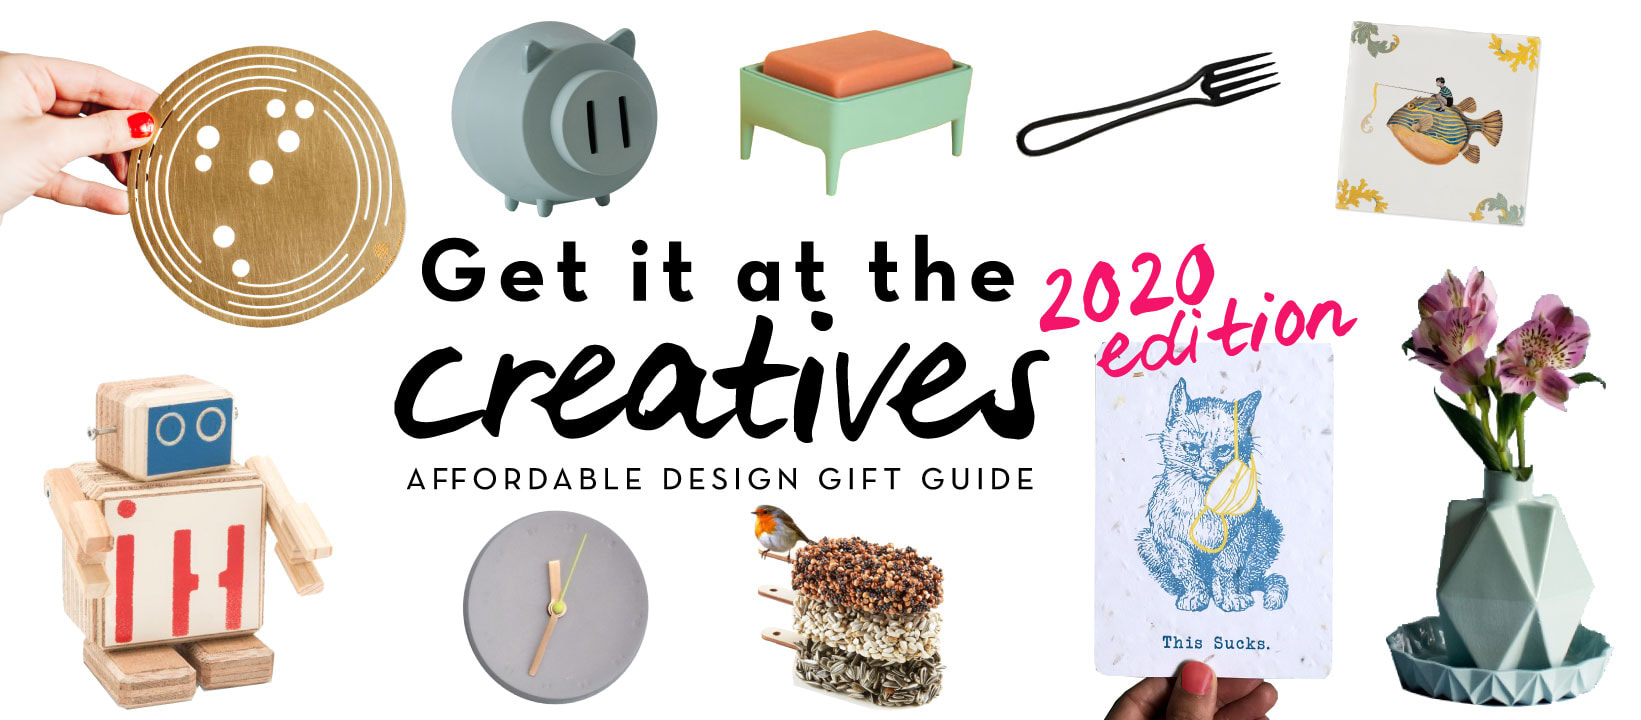 Get it at the Creatives gift guide - by House of Thol